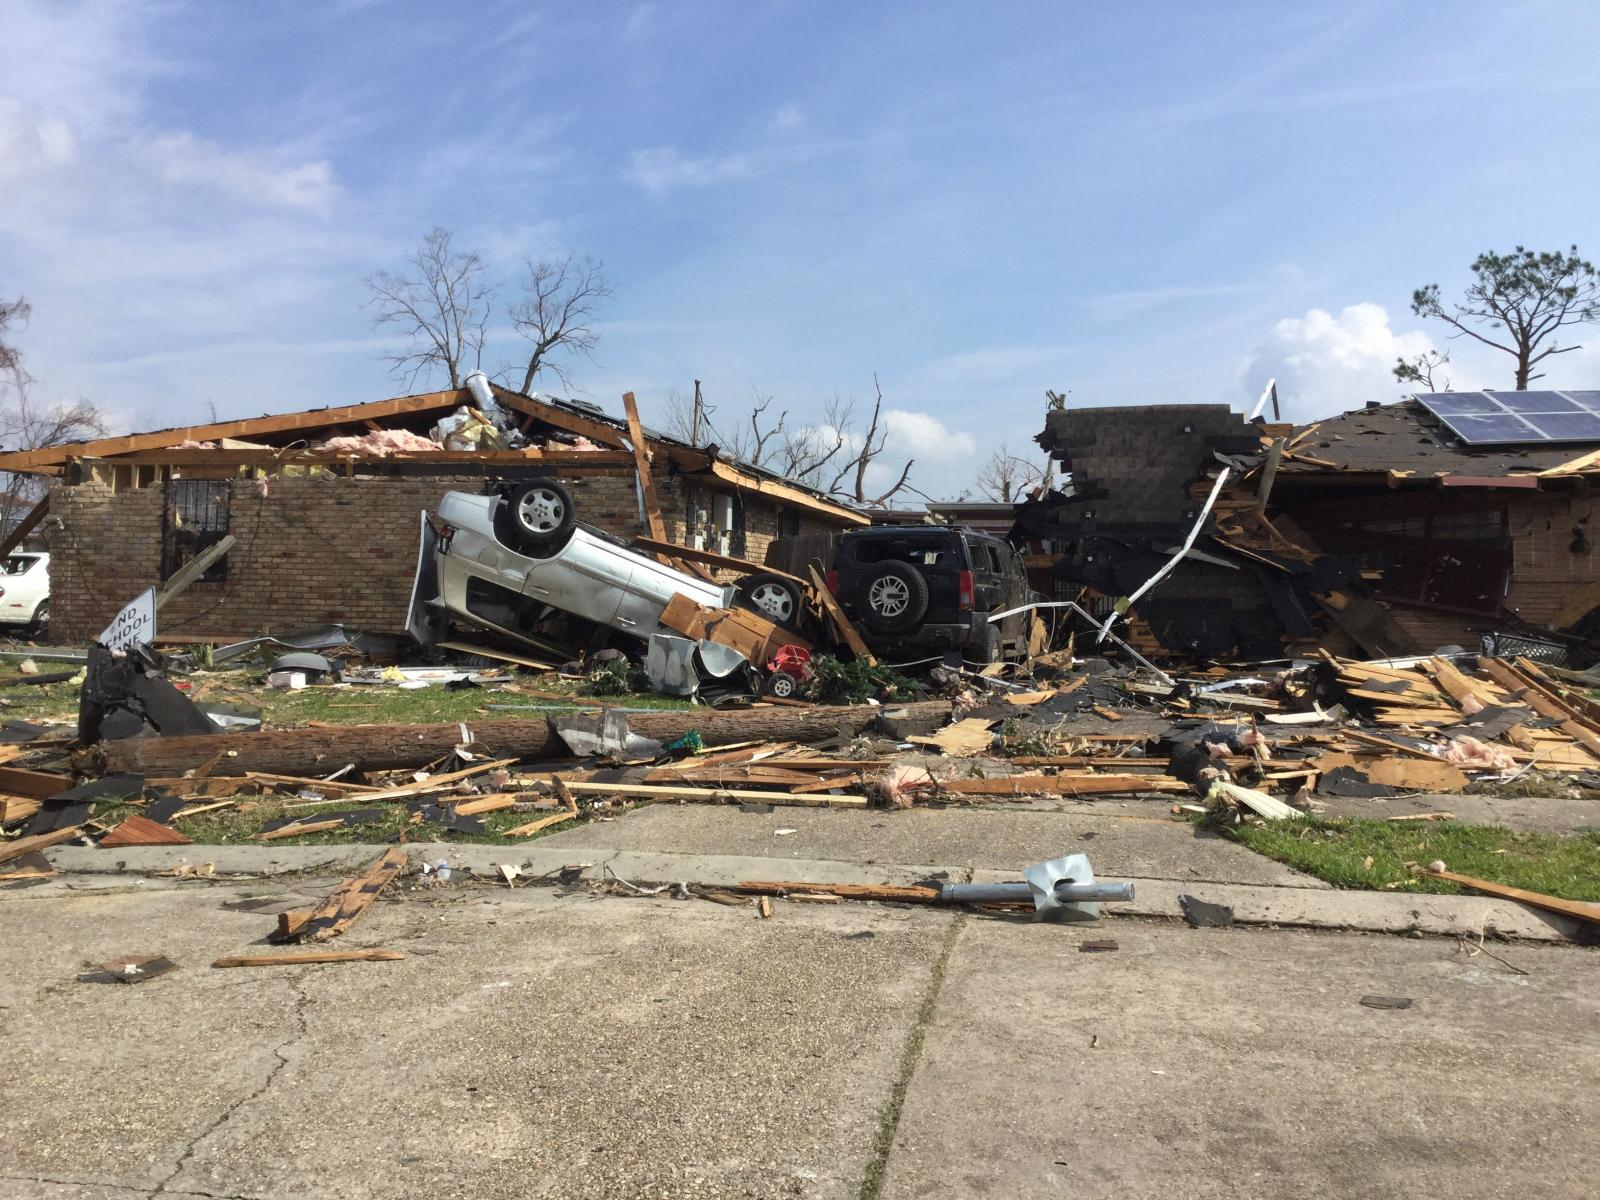 FEB. 2017 TORNADO - An EF3 tornado hit New Orleans east in Feb 2017 destroying homes, leaving thousands without power, and causing over $2.7 million in damages. We led over 240 volunteers in recovery efforts ranging from clearing debris to cleaning out homes.